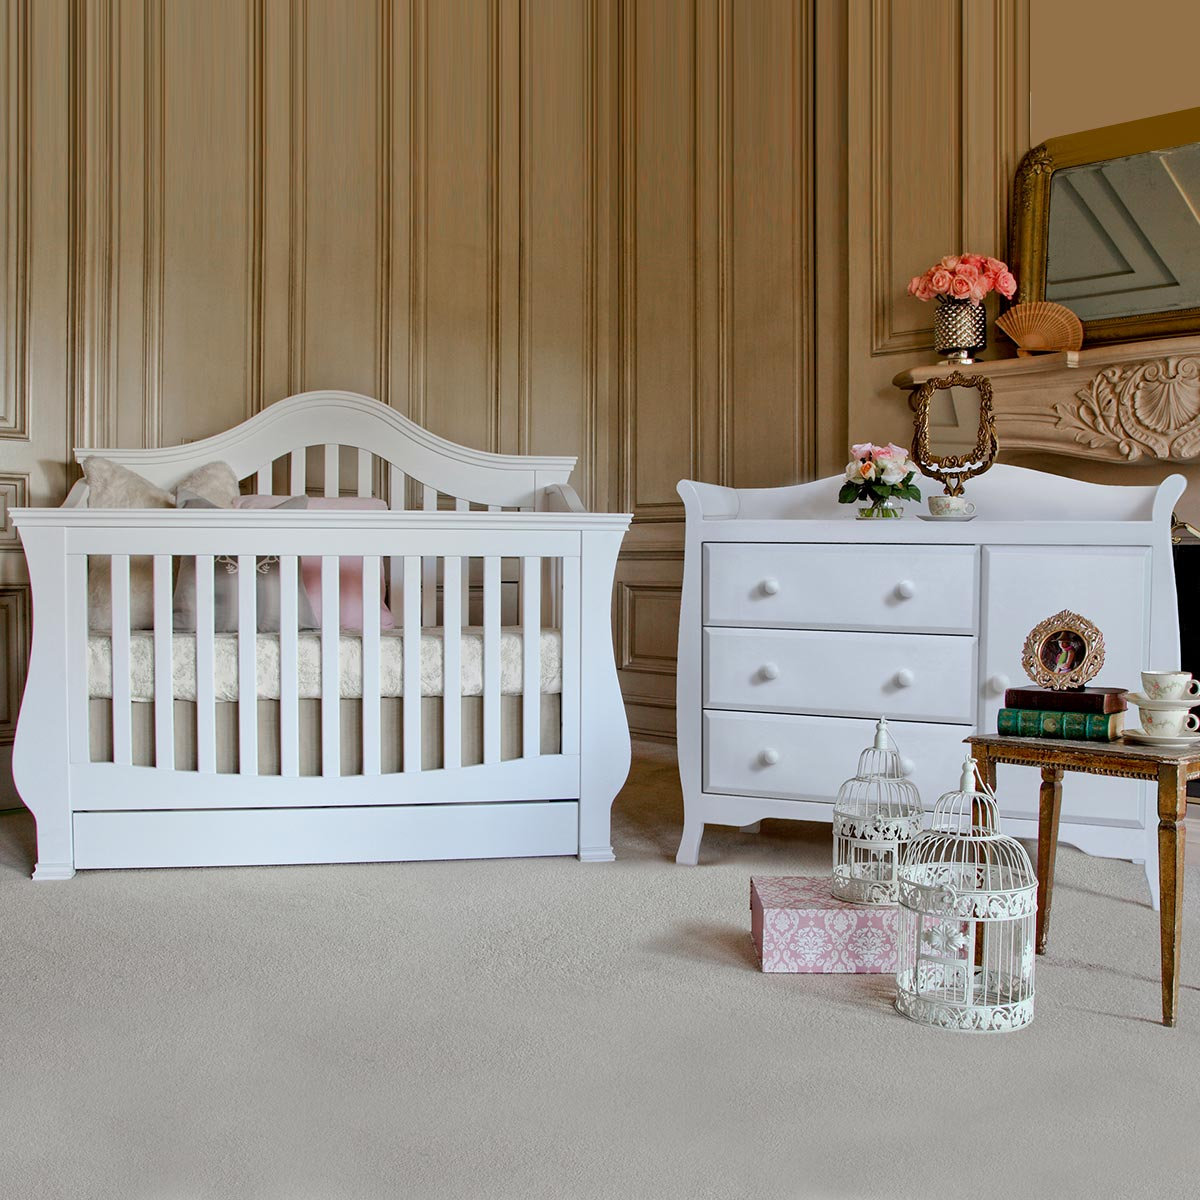 Million Dollar Baby 2 Piece Nursery Set Ashbury 4 In 1 Sleigh Convertible Crib And Combo Dresser White